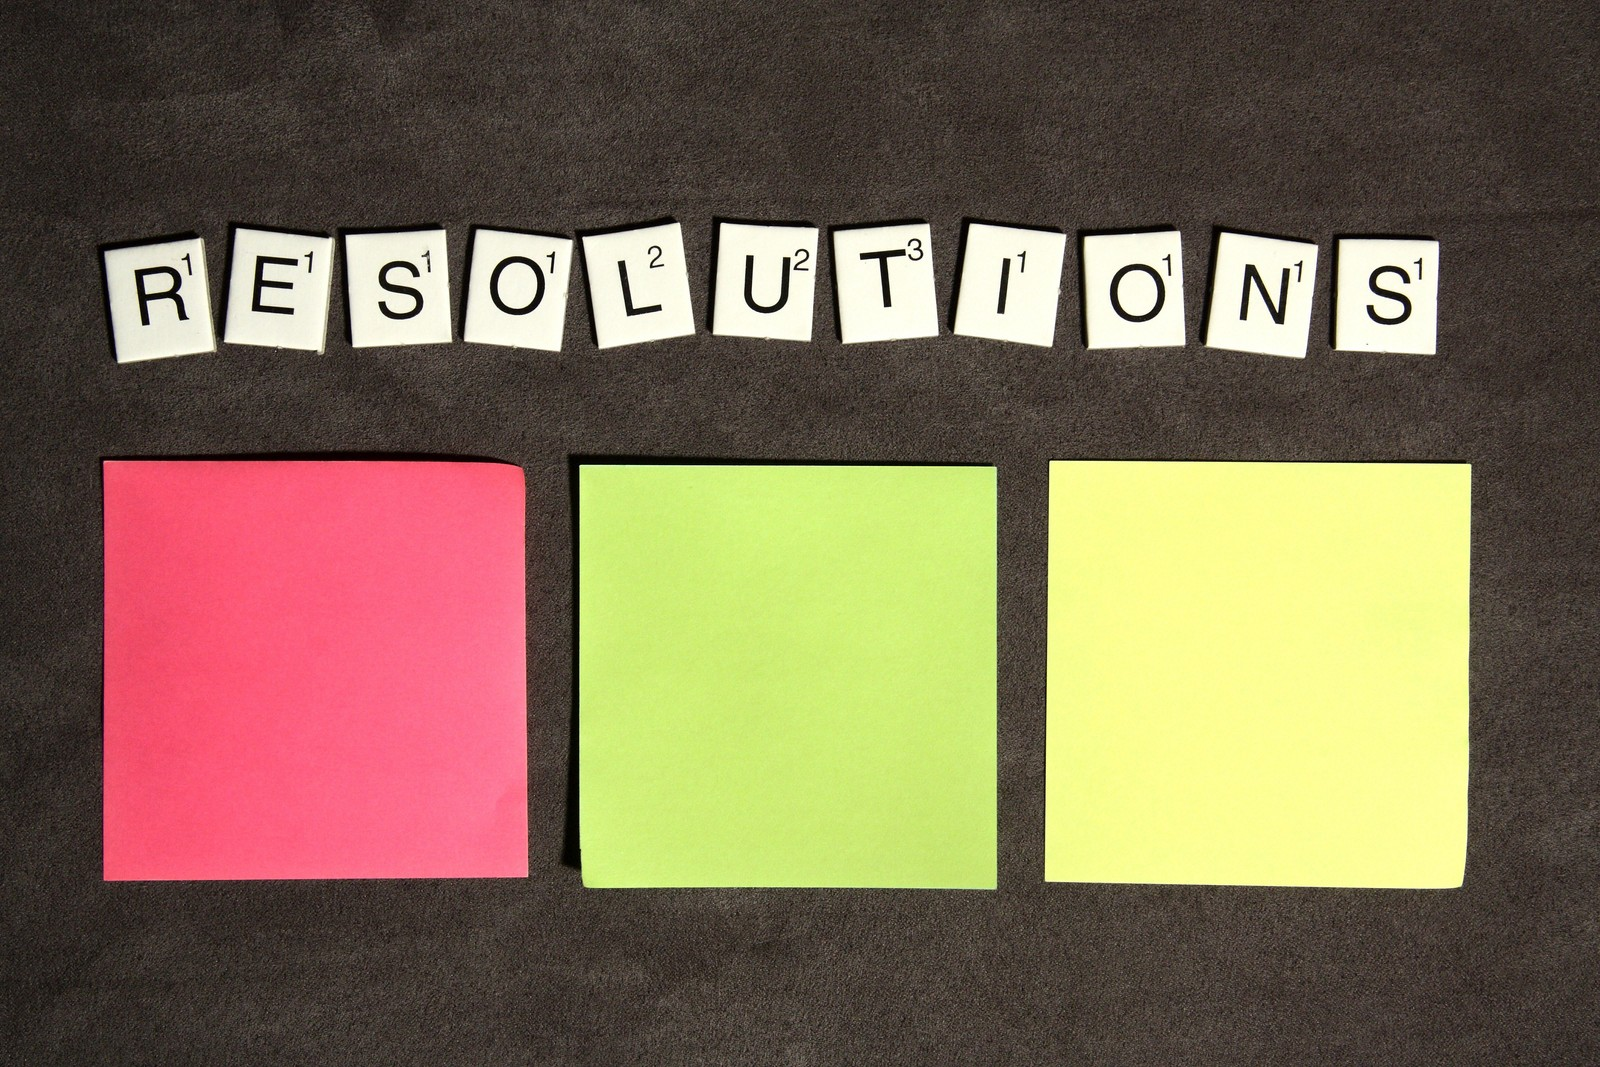 Tips for Making Resolutions Work